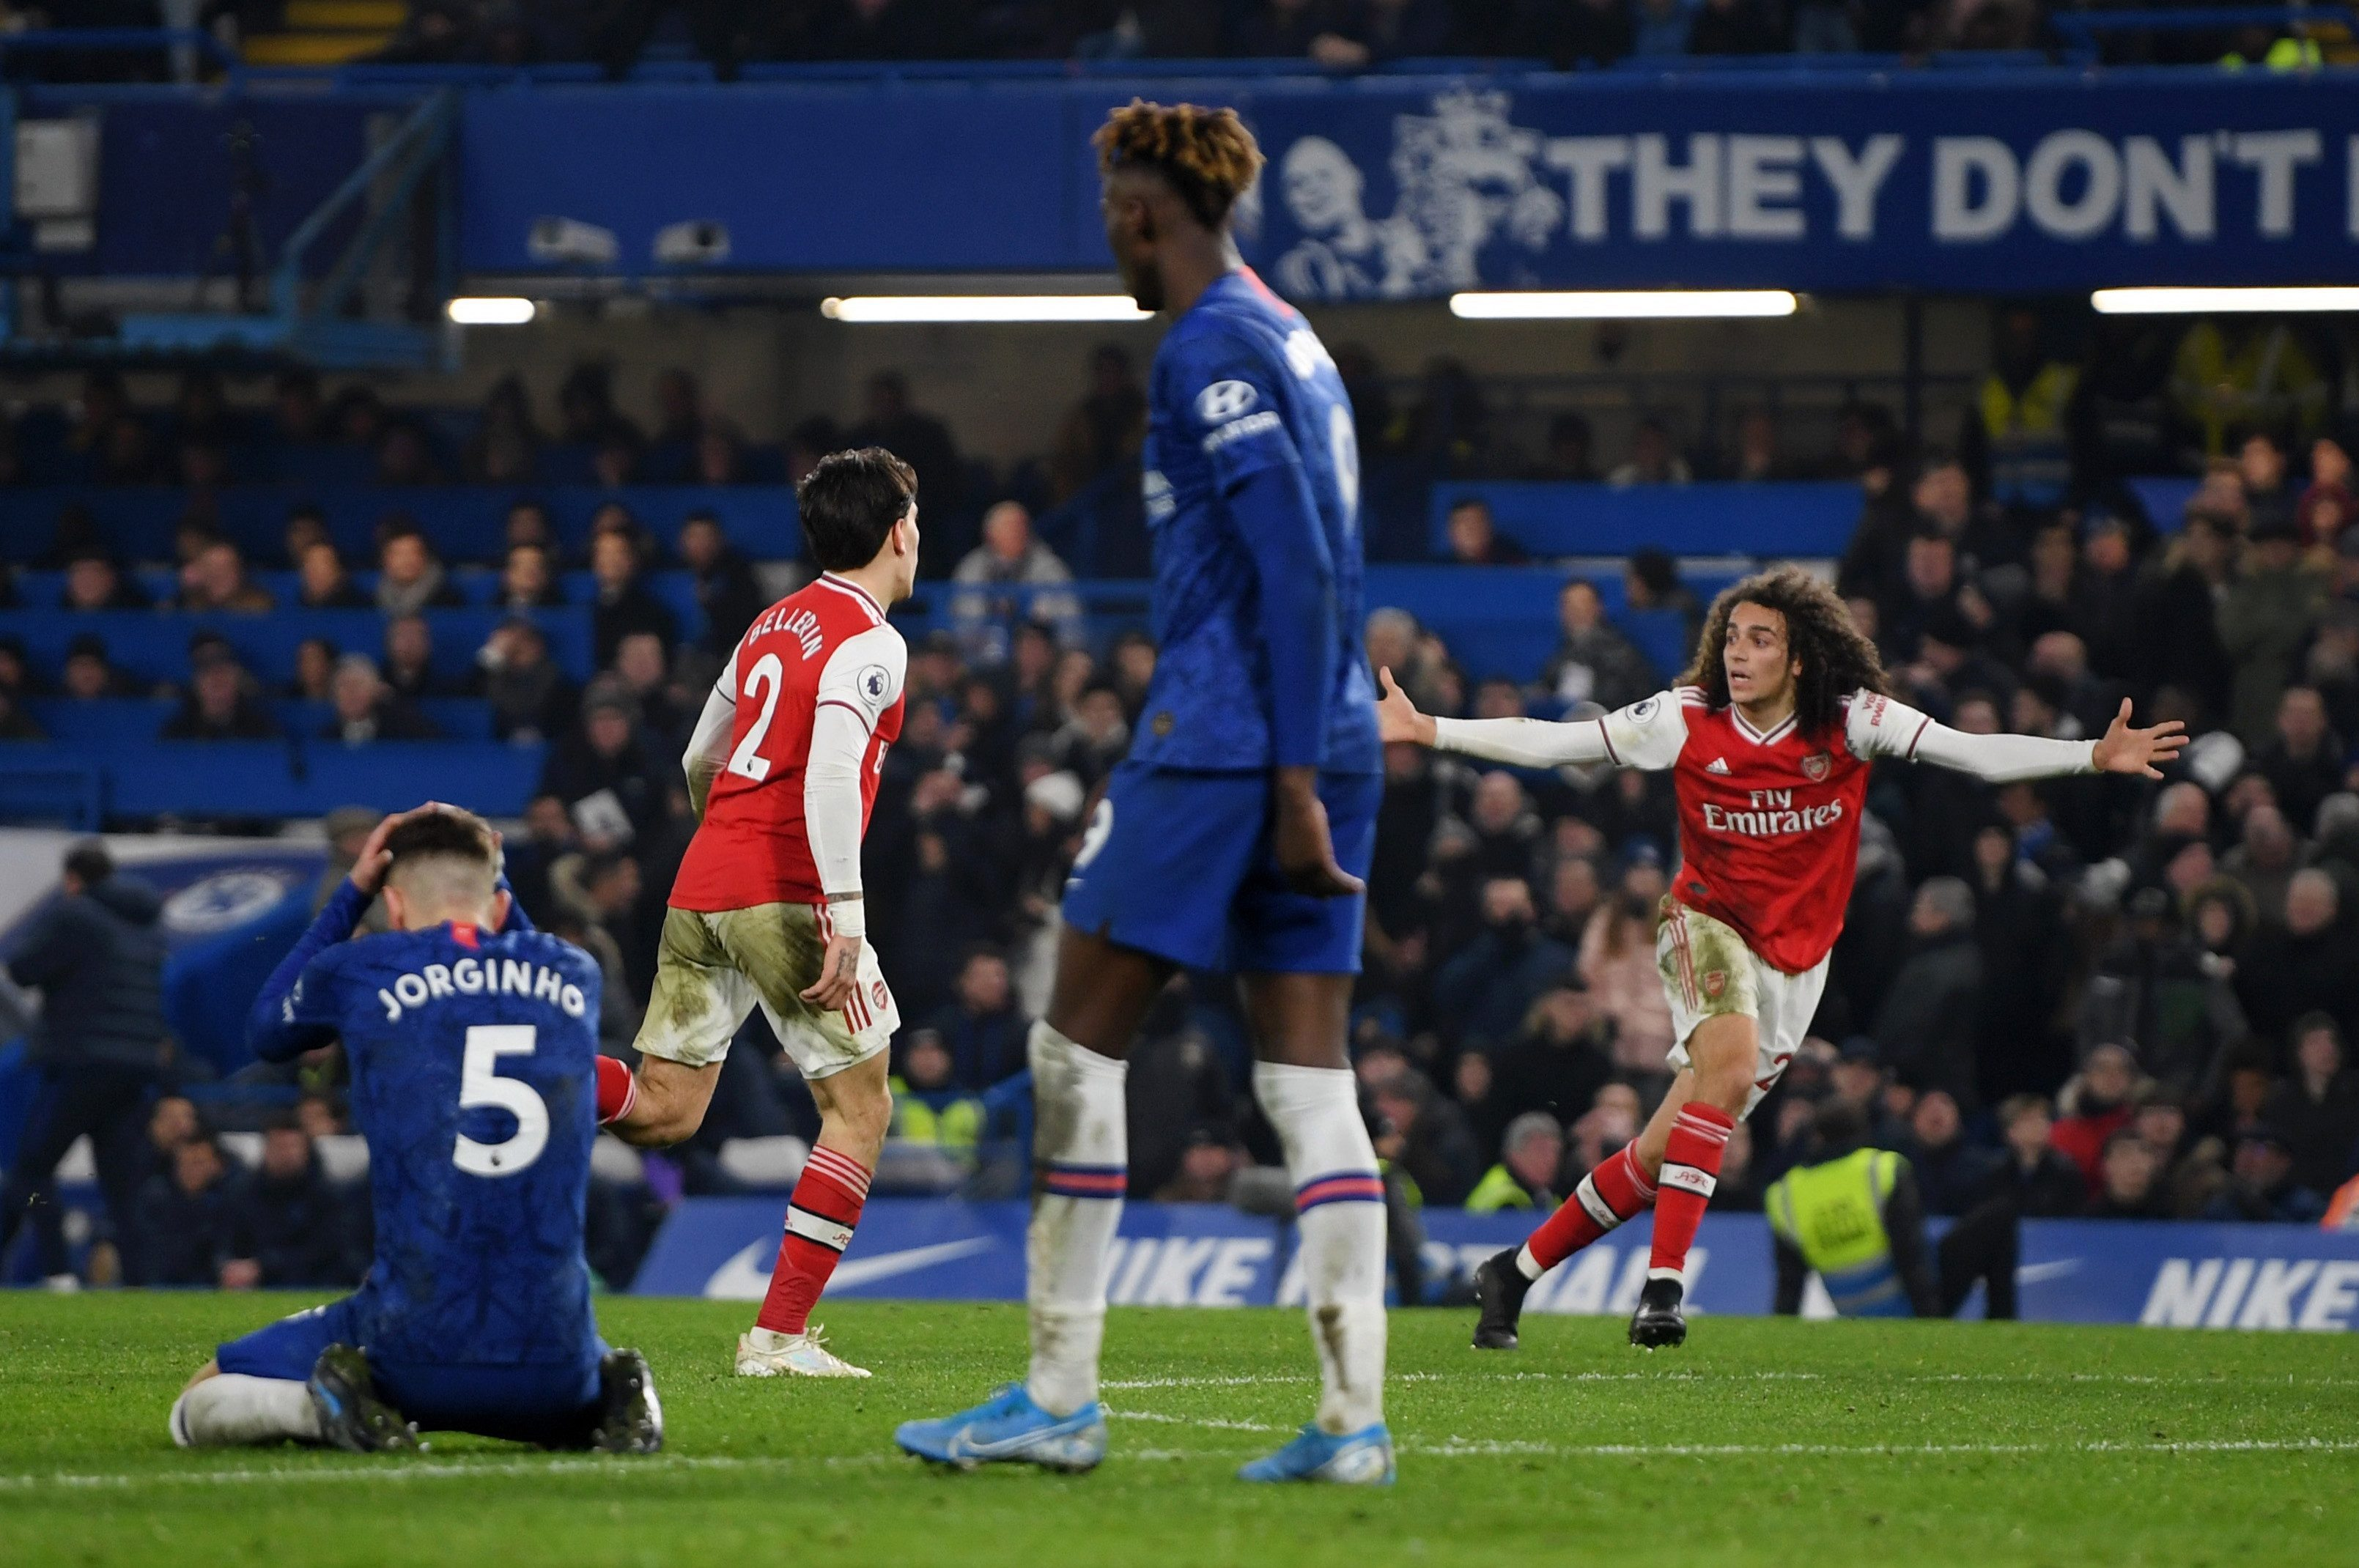 Hector Bellerin scored a dramatic equaliser for Arsenal in his first start since December 5. The Spaniard was also handed the captain's armband by Mikel Arteta